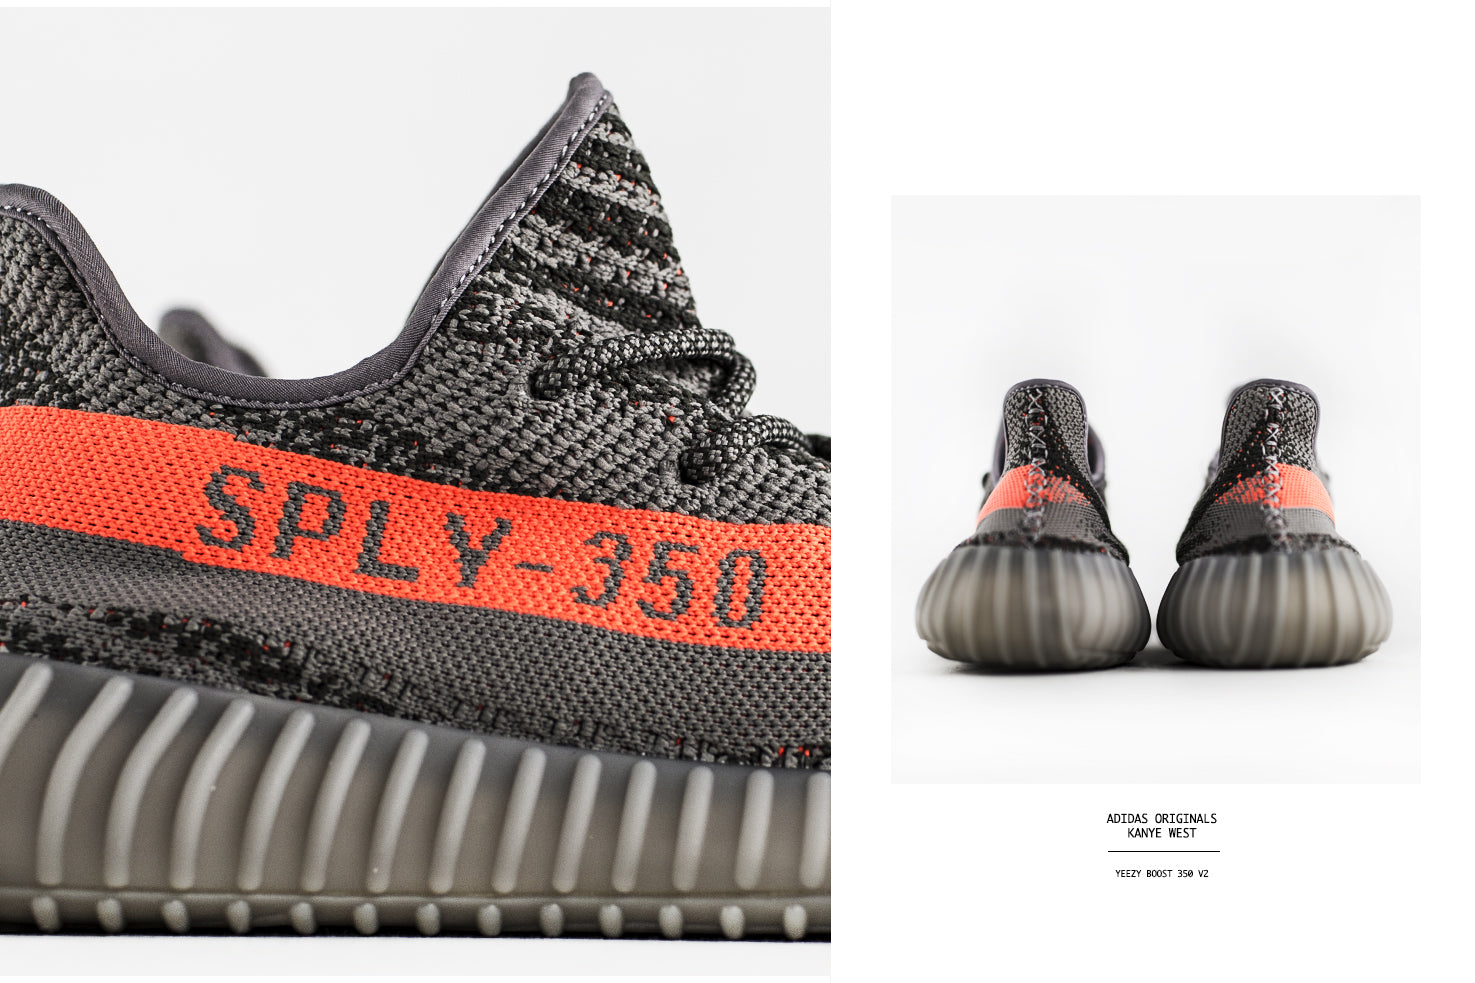 new product 52b38 6206a BLENDS | adidas x Kanye West Yeezy Boost 350 V2 Feature | BLENDS